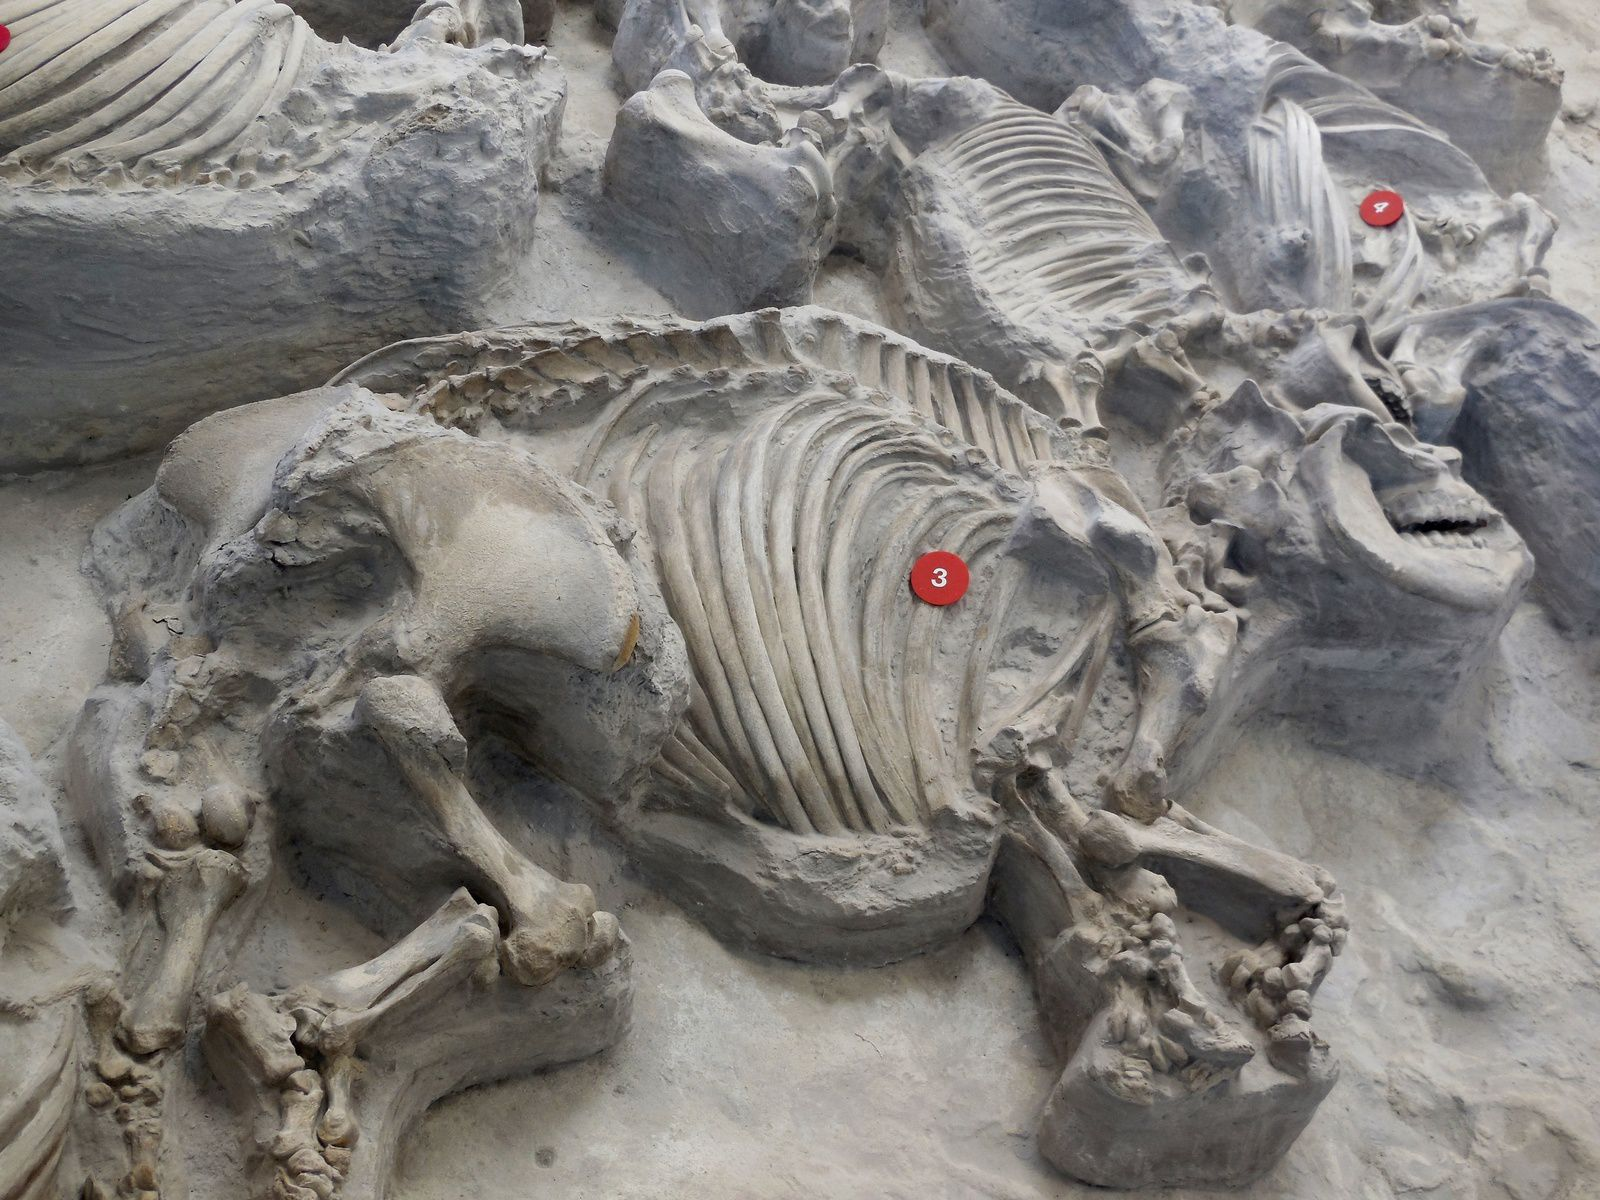 Ashfall Fossil Beds - a rhinoceros (teleoceras major) and her baby found near each other - Doc. Postcard Jar